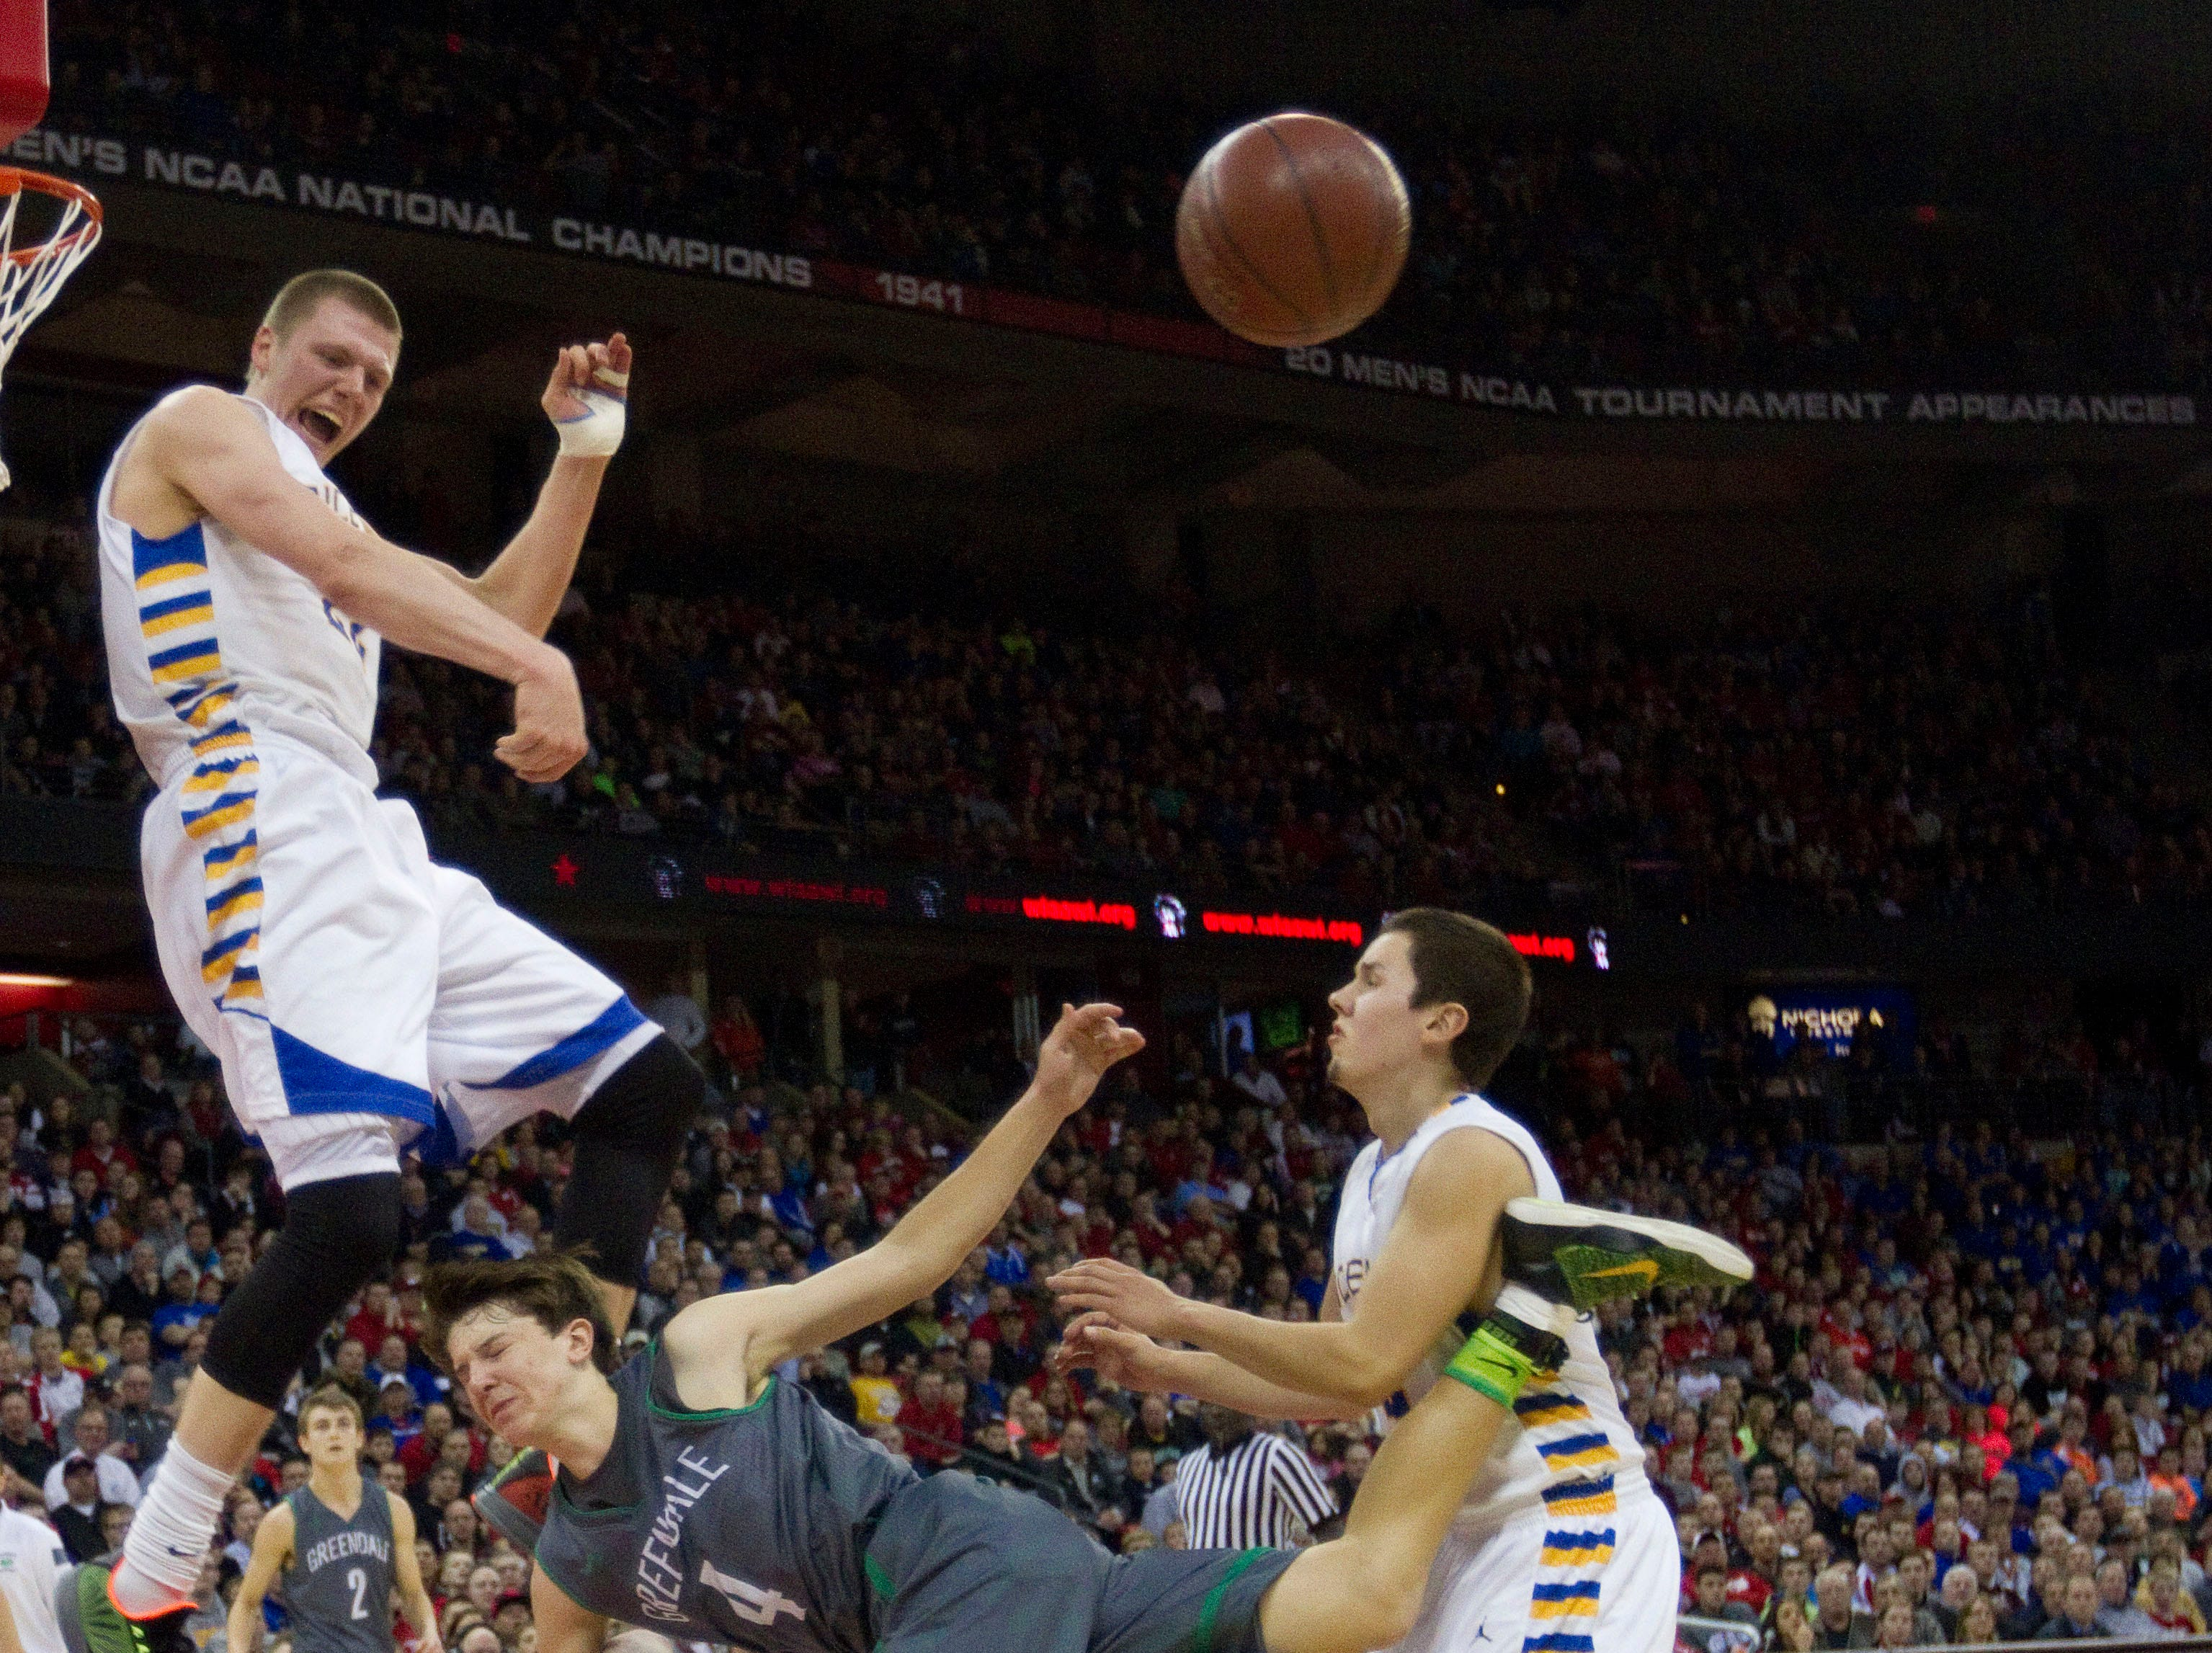 Greendale's Nate Thompson collides with Rice Lake's Henry Ellenson (left), Hunter Ashlin (24), and Erik Hovde (right) during the fourth period of the teams WIAA Division 2 Semi-Final Game  in the University of Wisconsin Kohl Center Friday, March 20, 2015, in Madison, Wisconsin.  Rice Lake won the game 72-64.